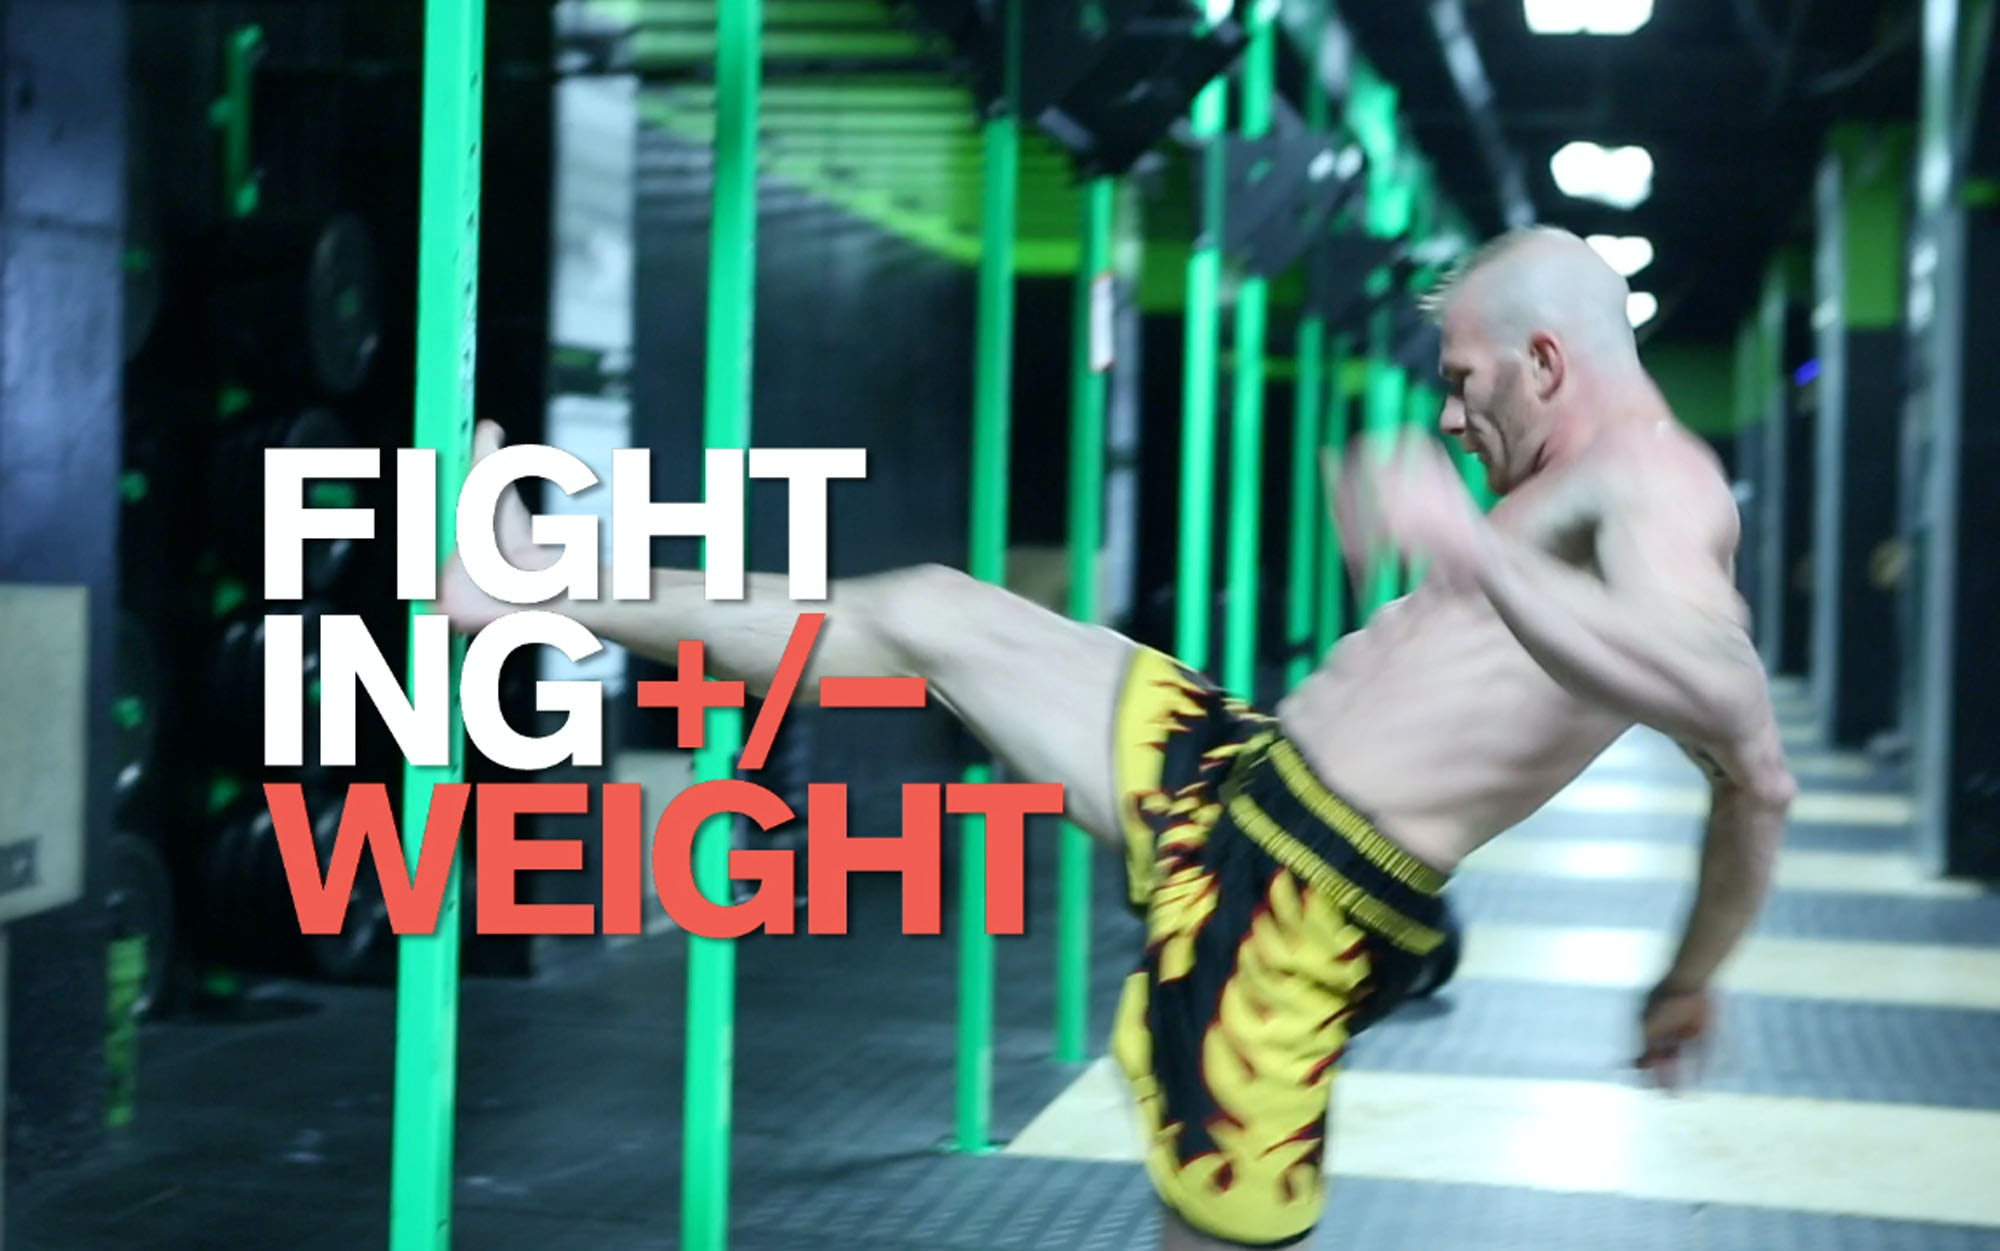 Fighting Weight on GQ TV Screenshot | Source: Associated Press